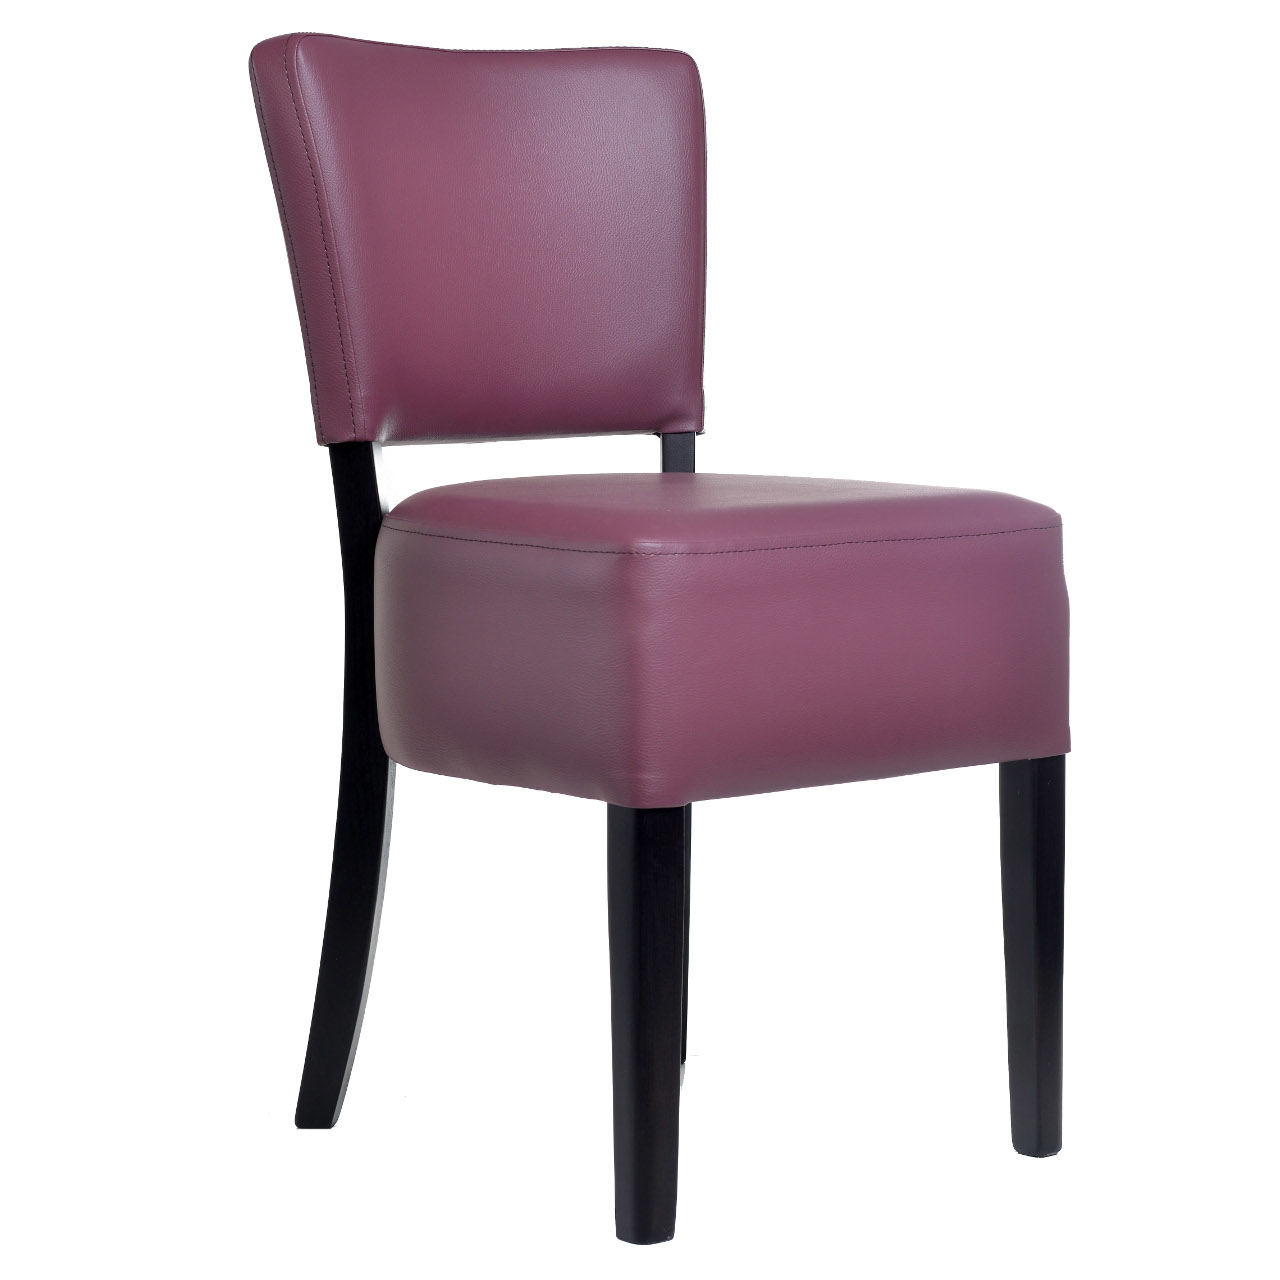 1970 SIDE CHAIR SOLID HARDWOOD RESTAURANT CHAIRS PLUM